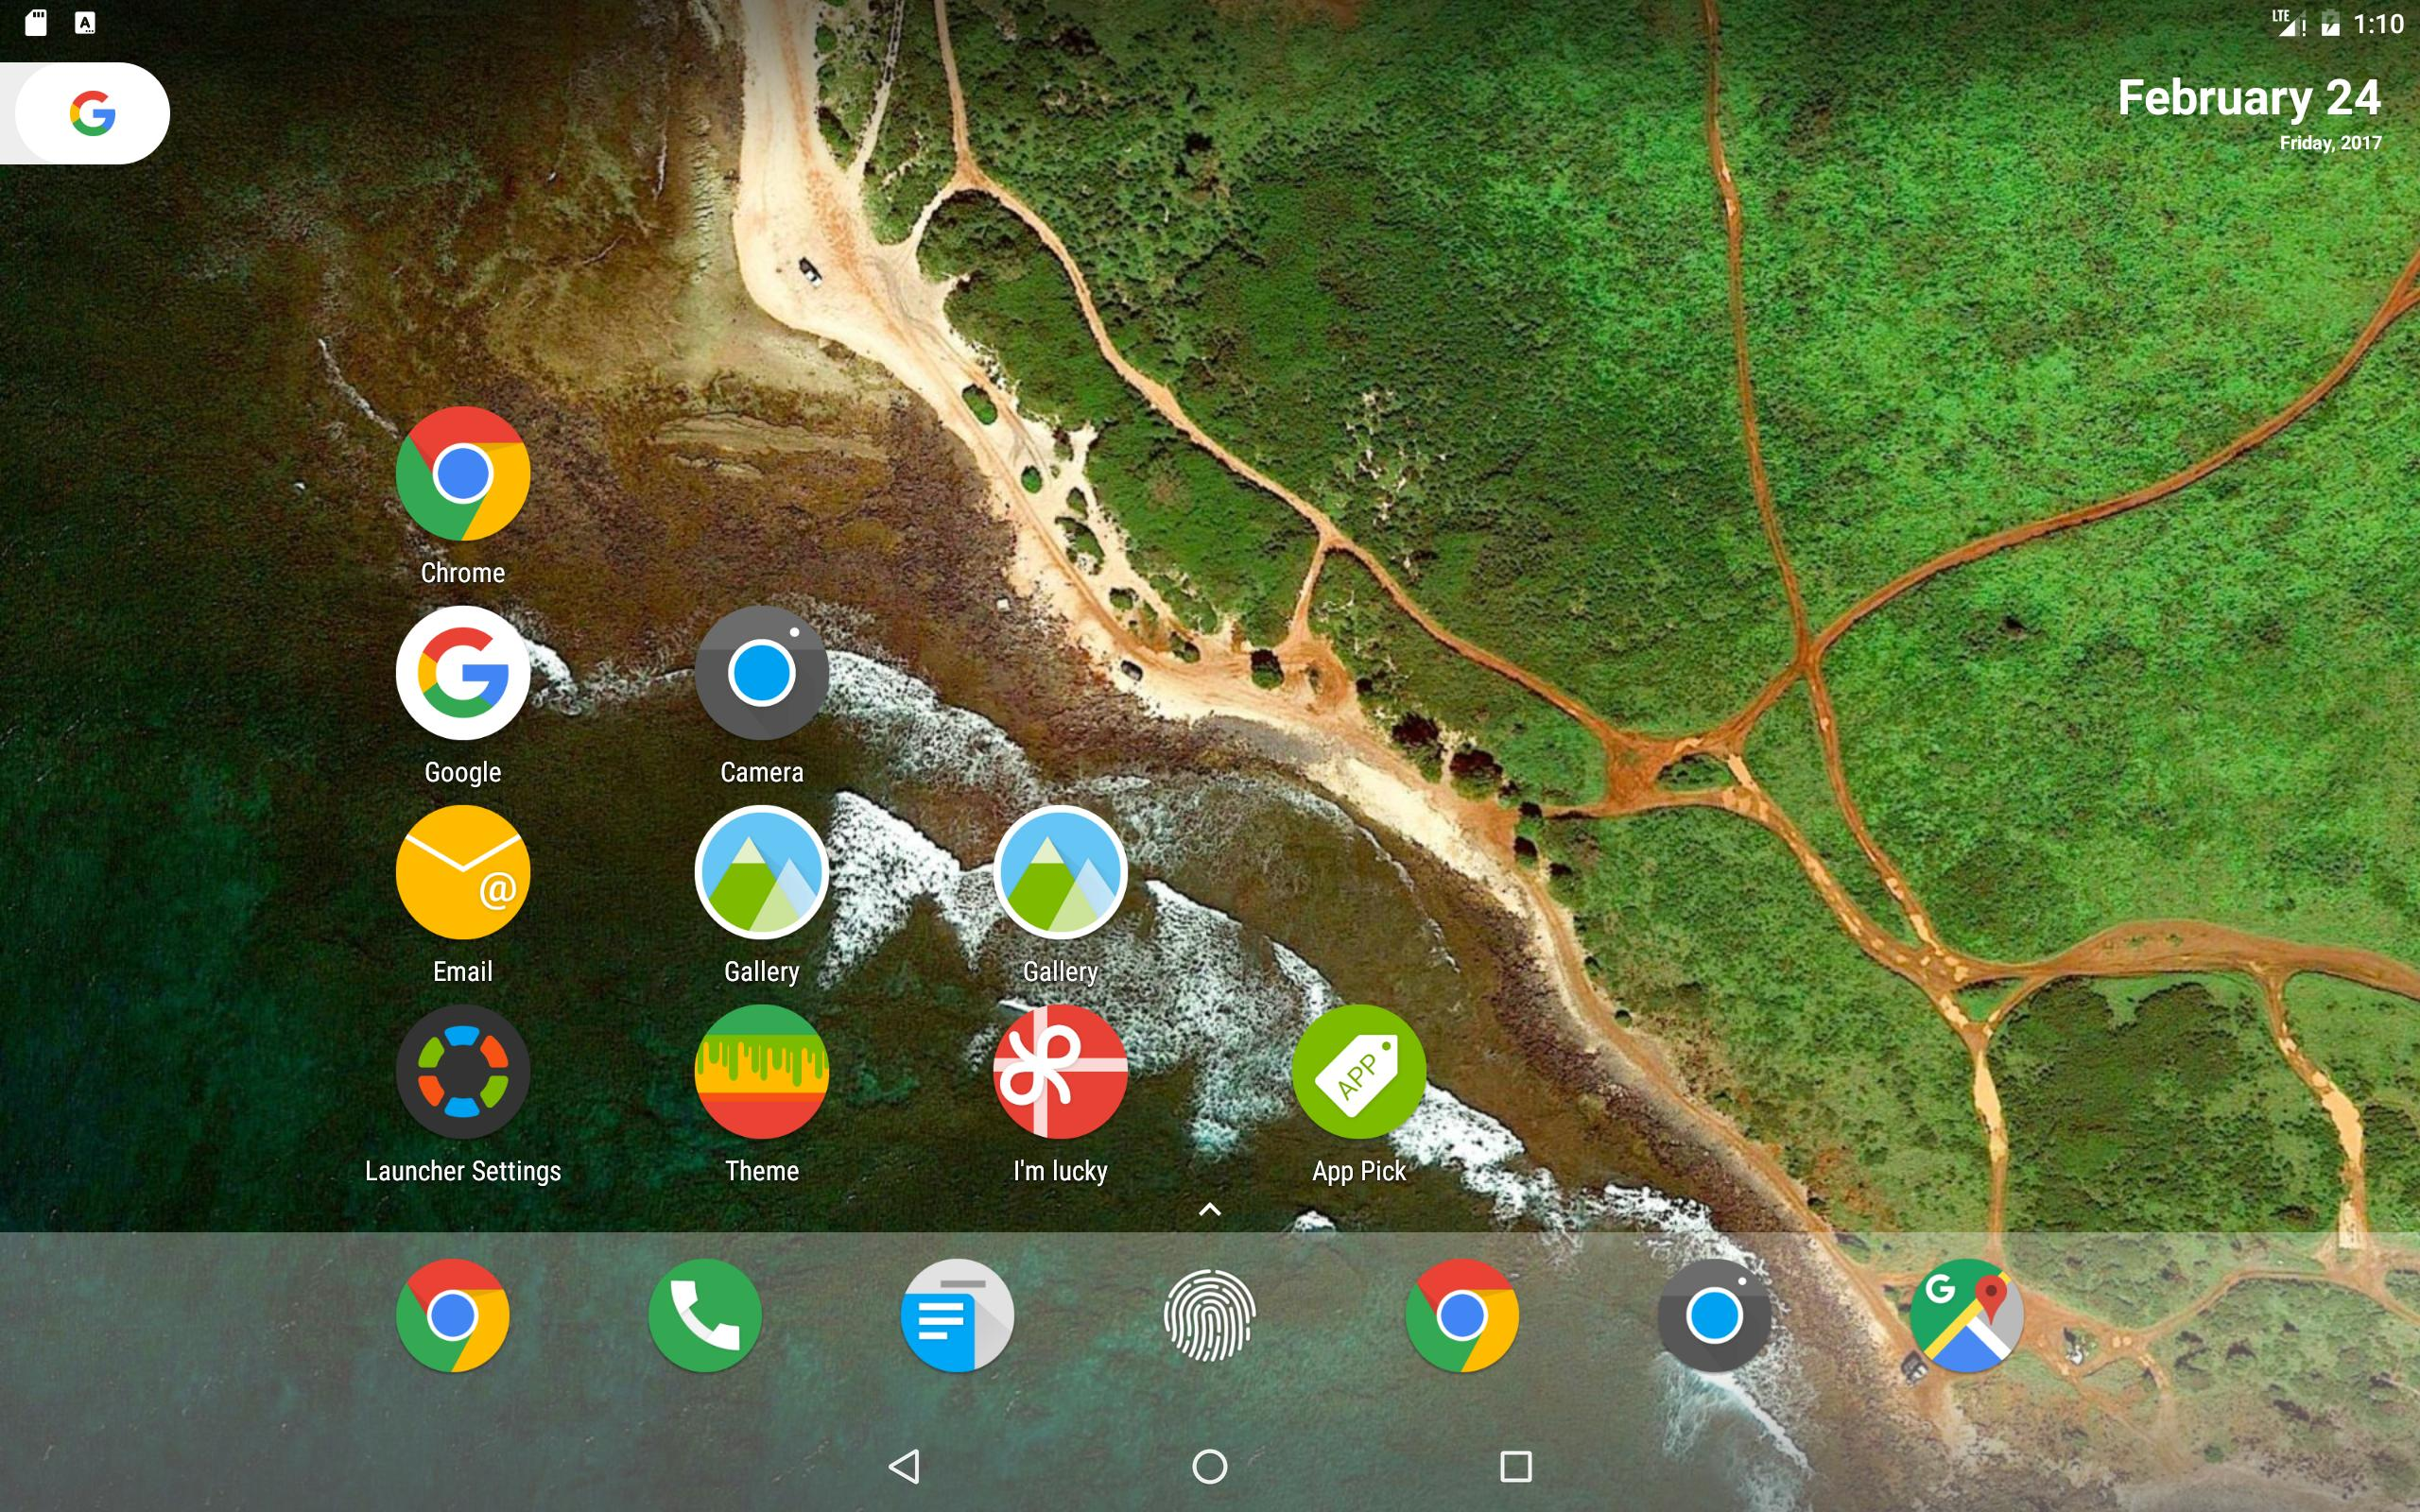 N Launcher for Android - APK Download